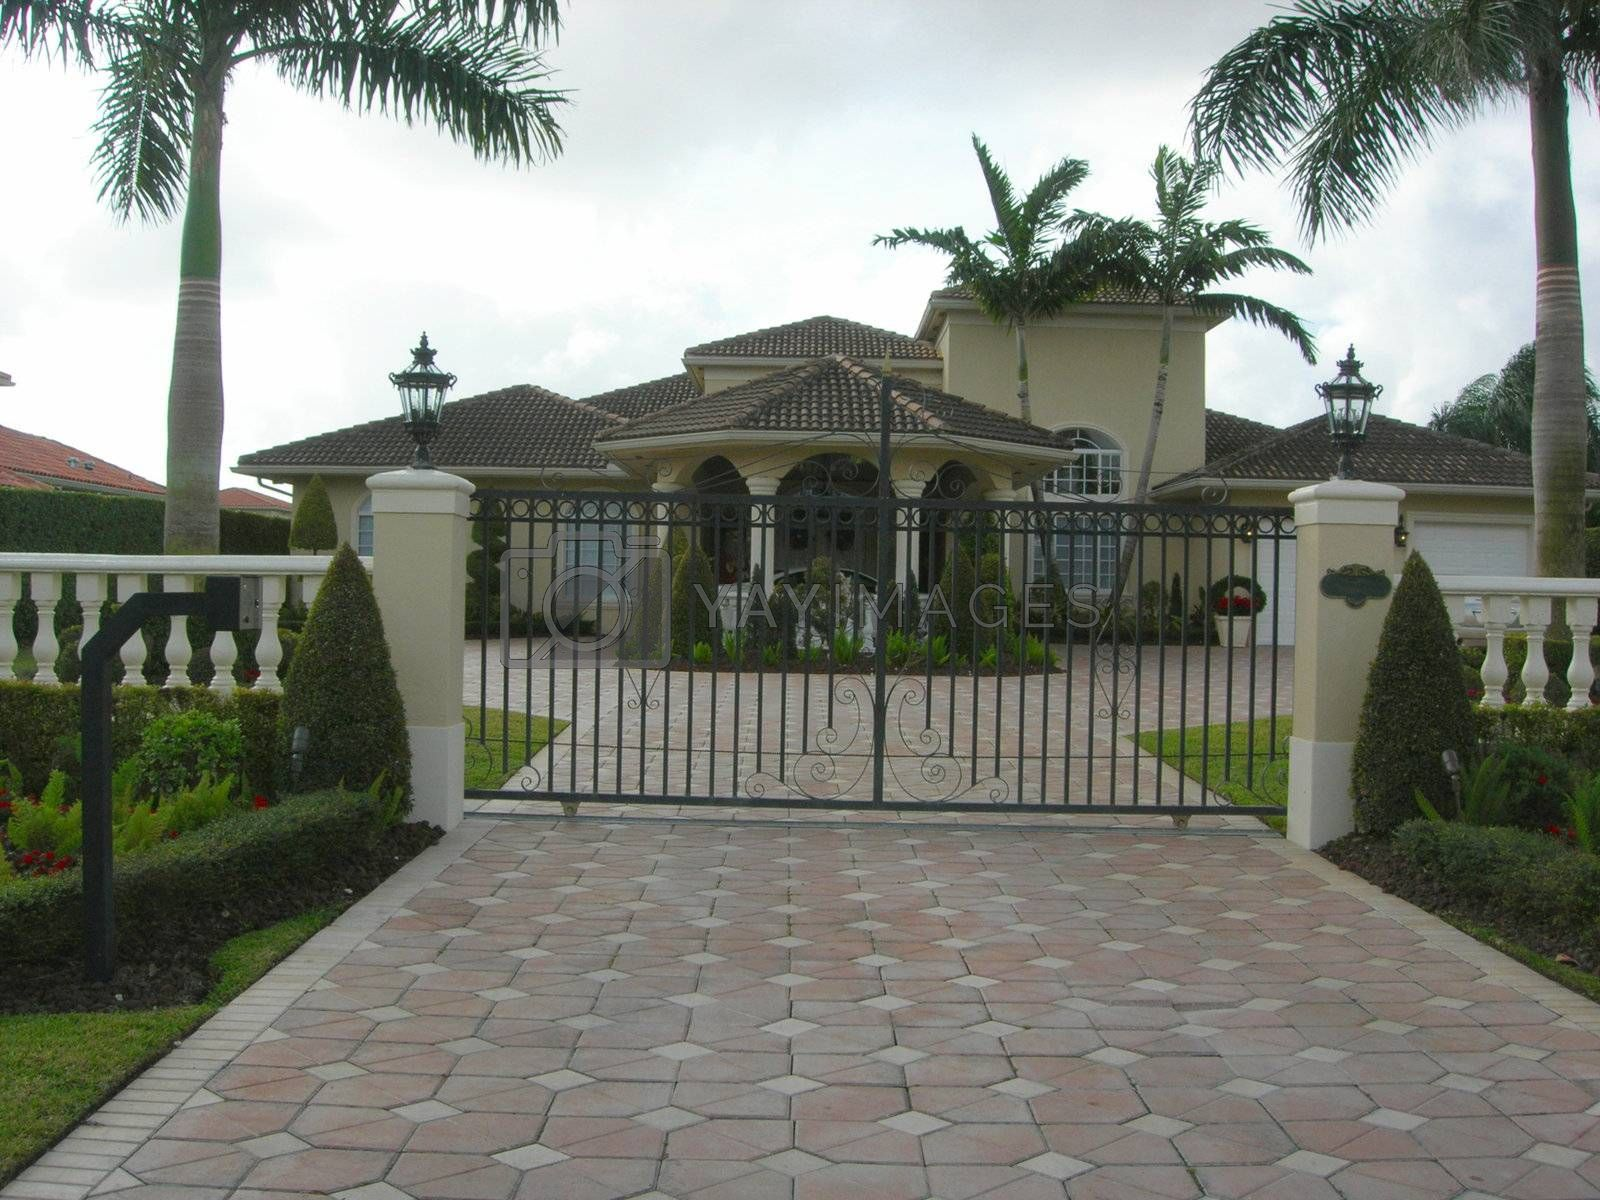 Mediterranean House with pavers, iron gate and landscaping